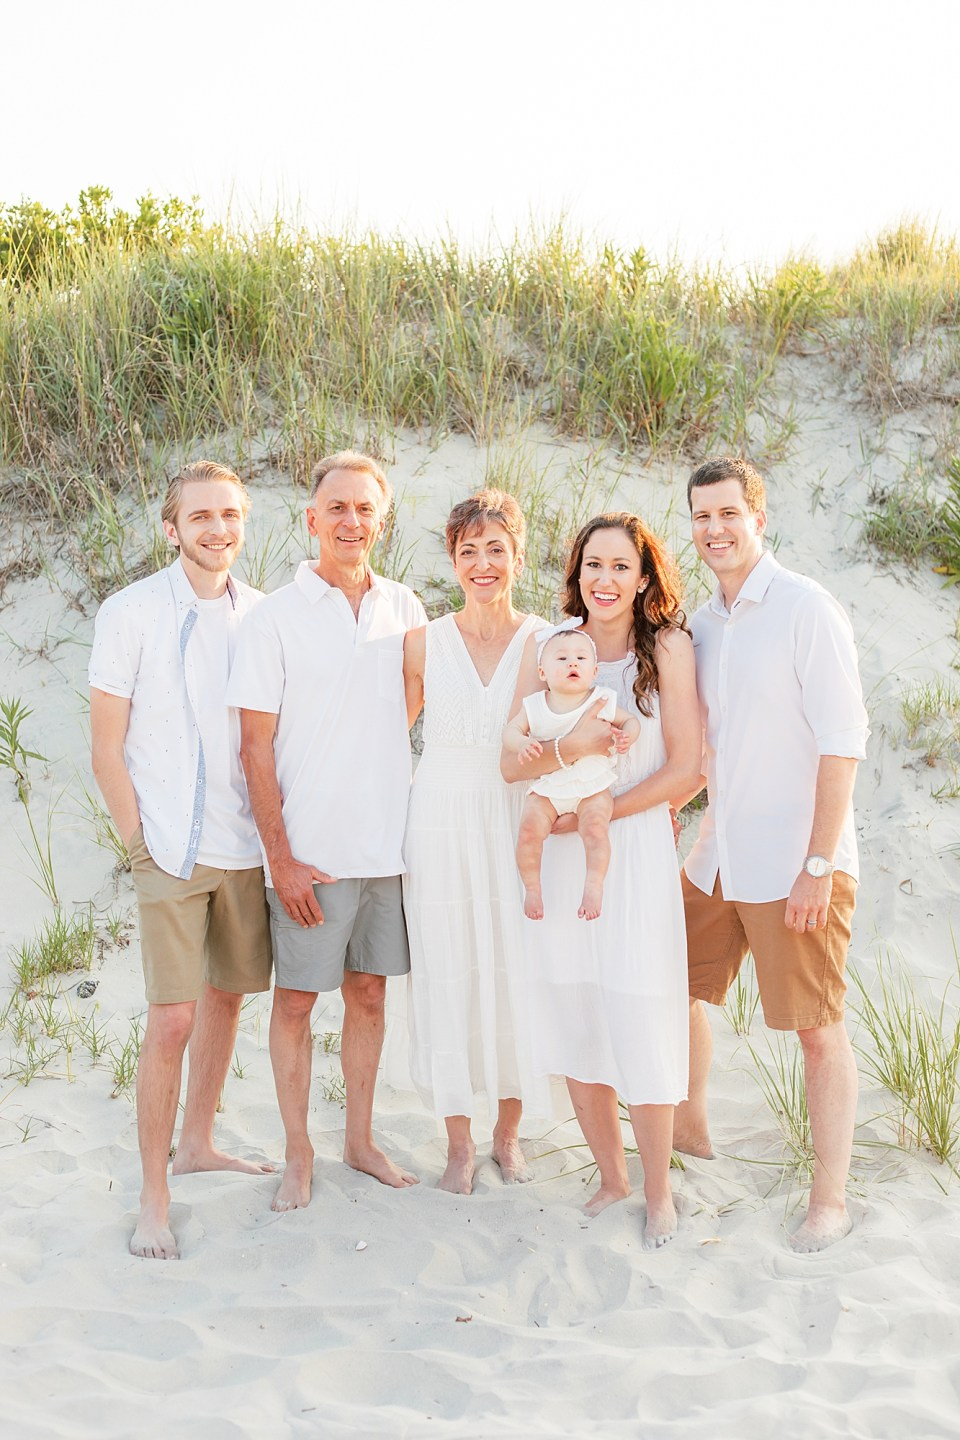 Family Session Outfit Inspiration by Magalena Studios8